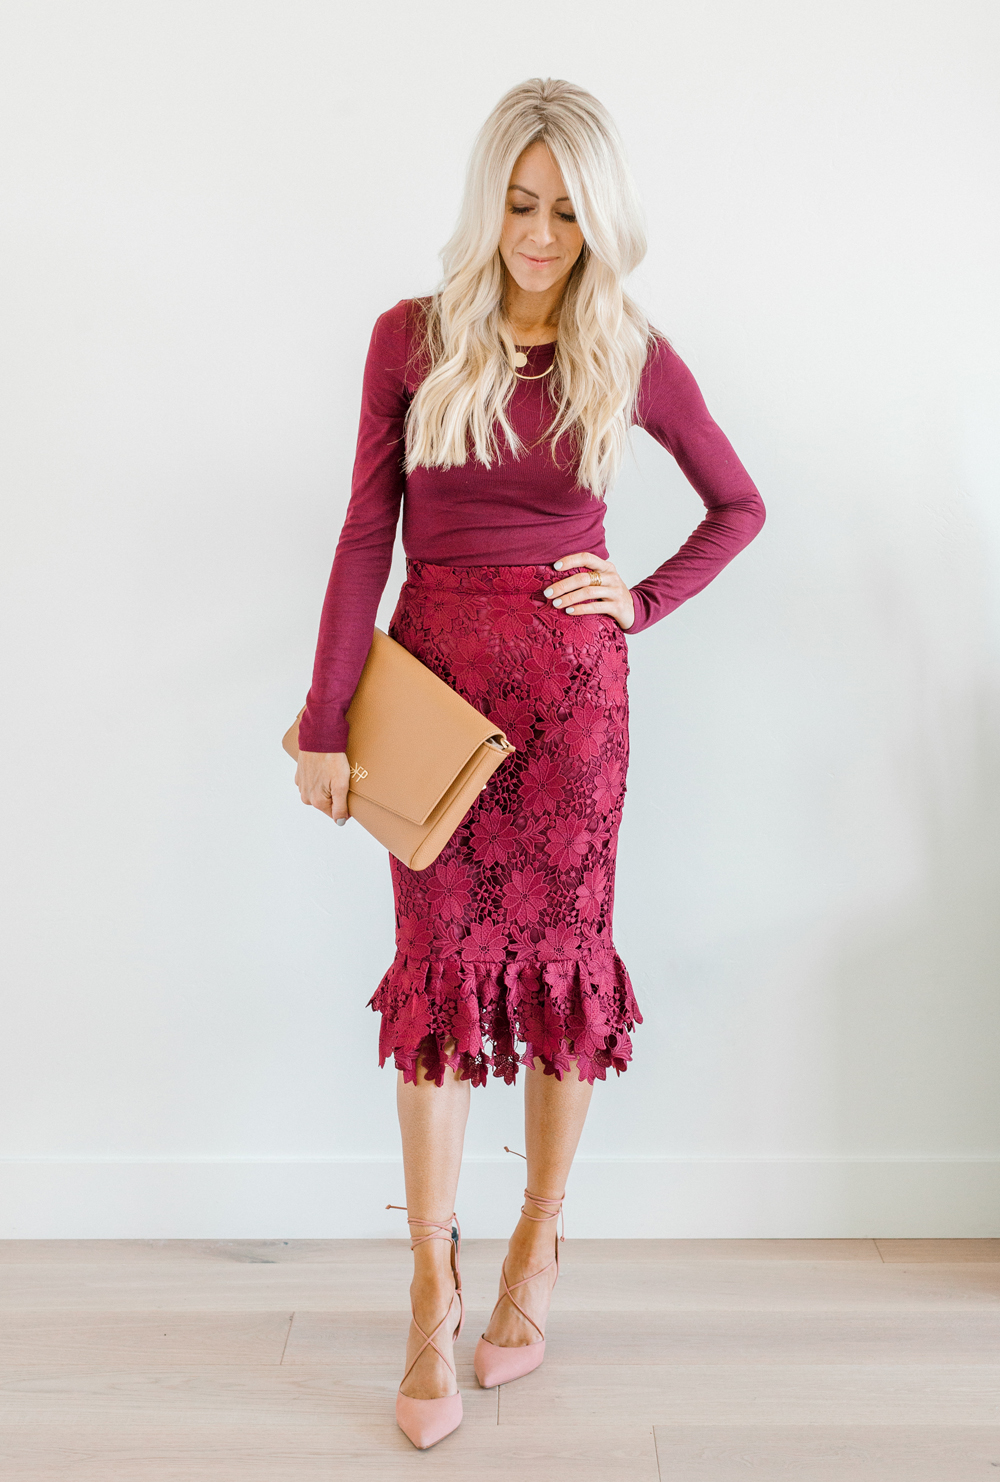 Kailee Wright womens Chirstmas gift guide